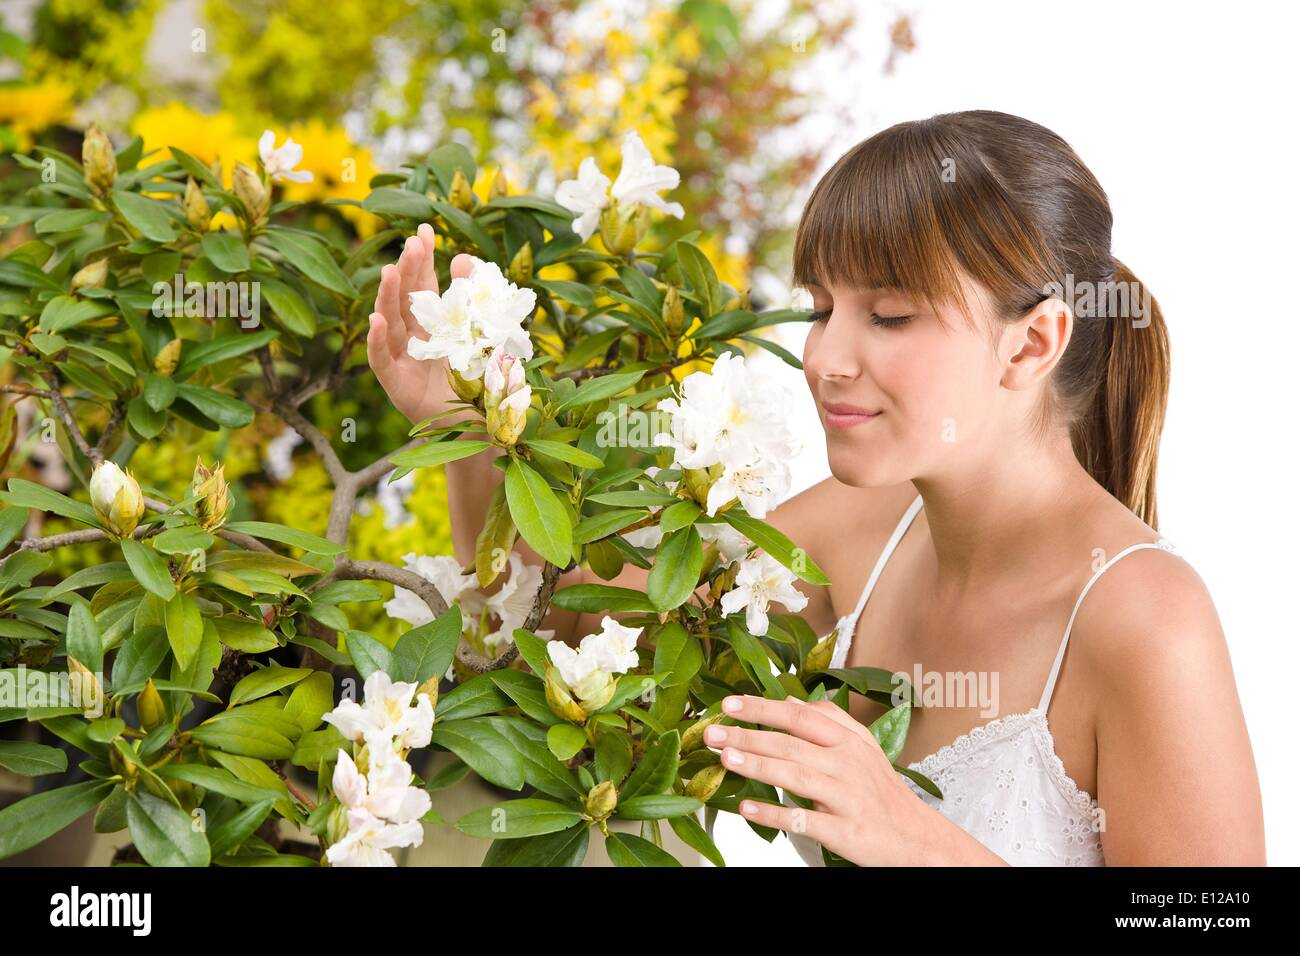 May 01, 2010 - May 1, 2010 - Portrait of woman smelling blossom of Rhododendron flower on white background - Stock Image